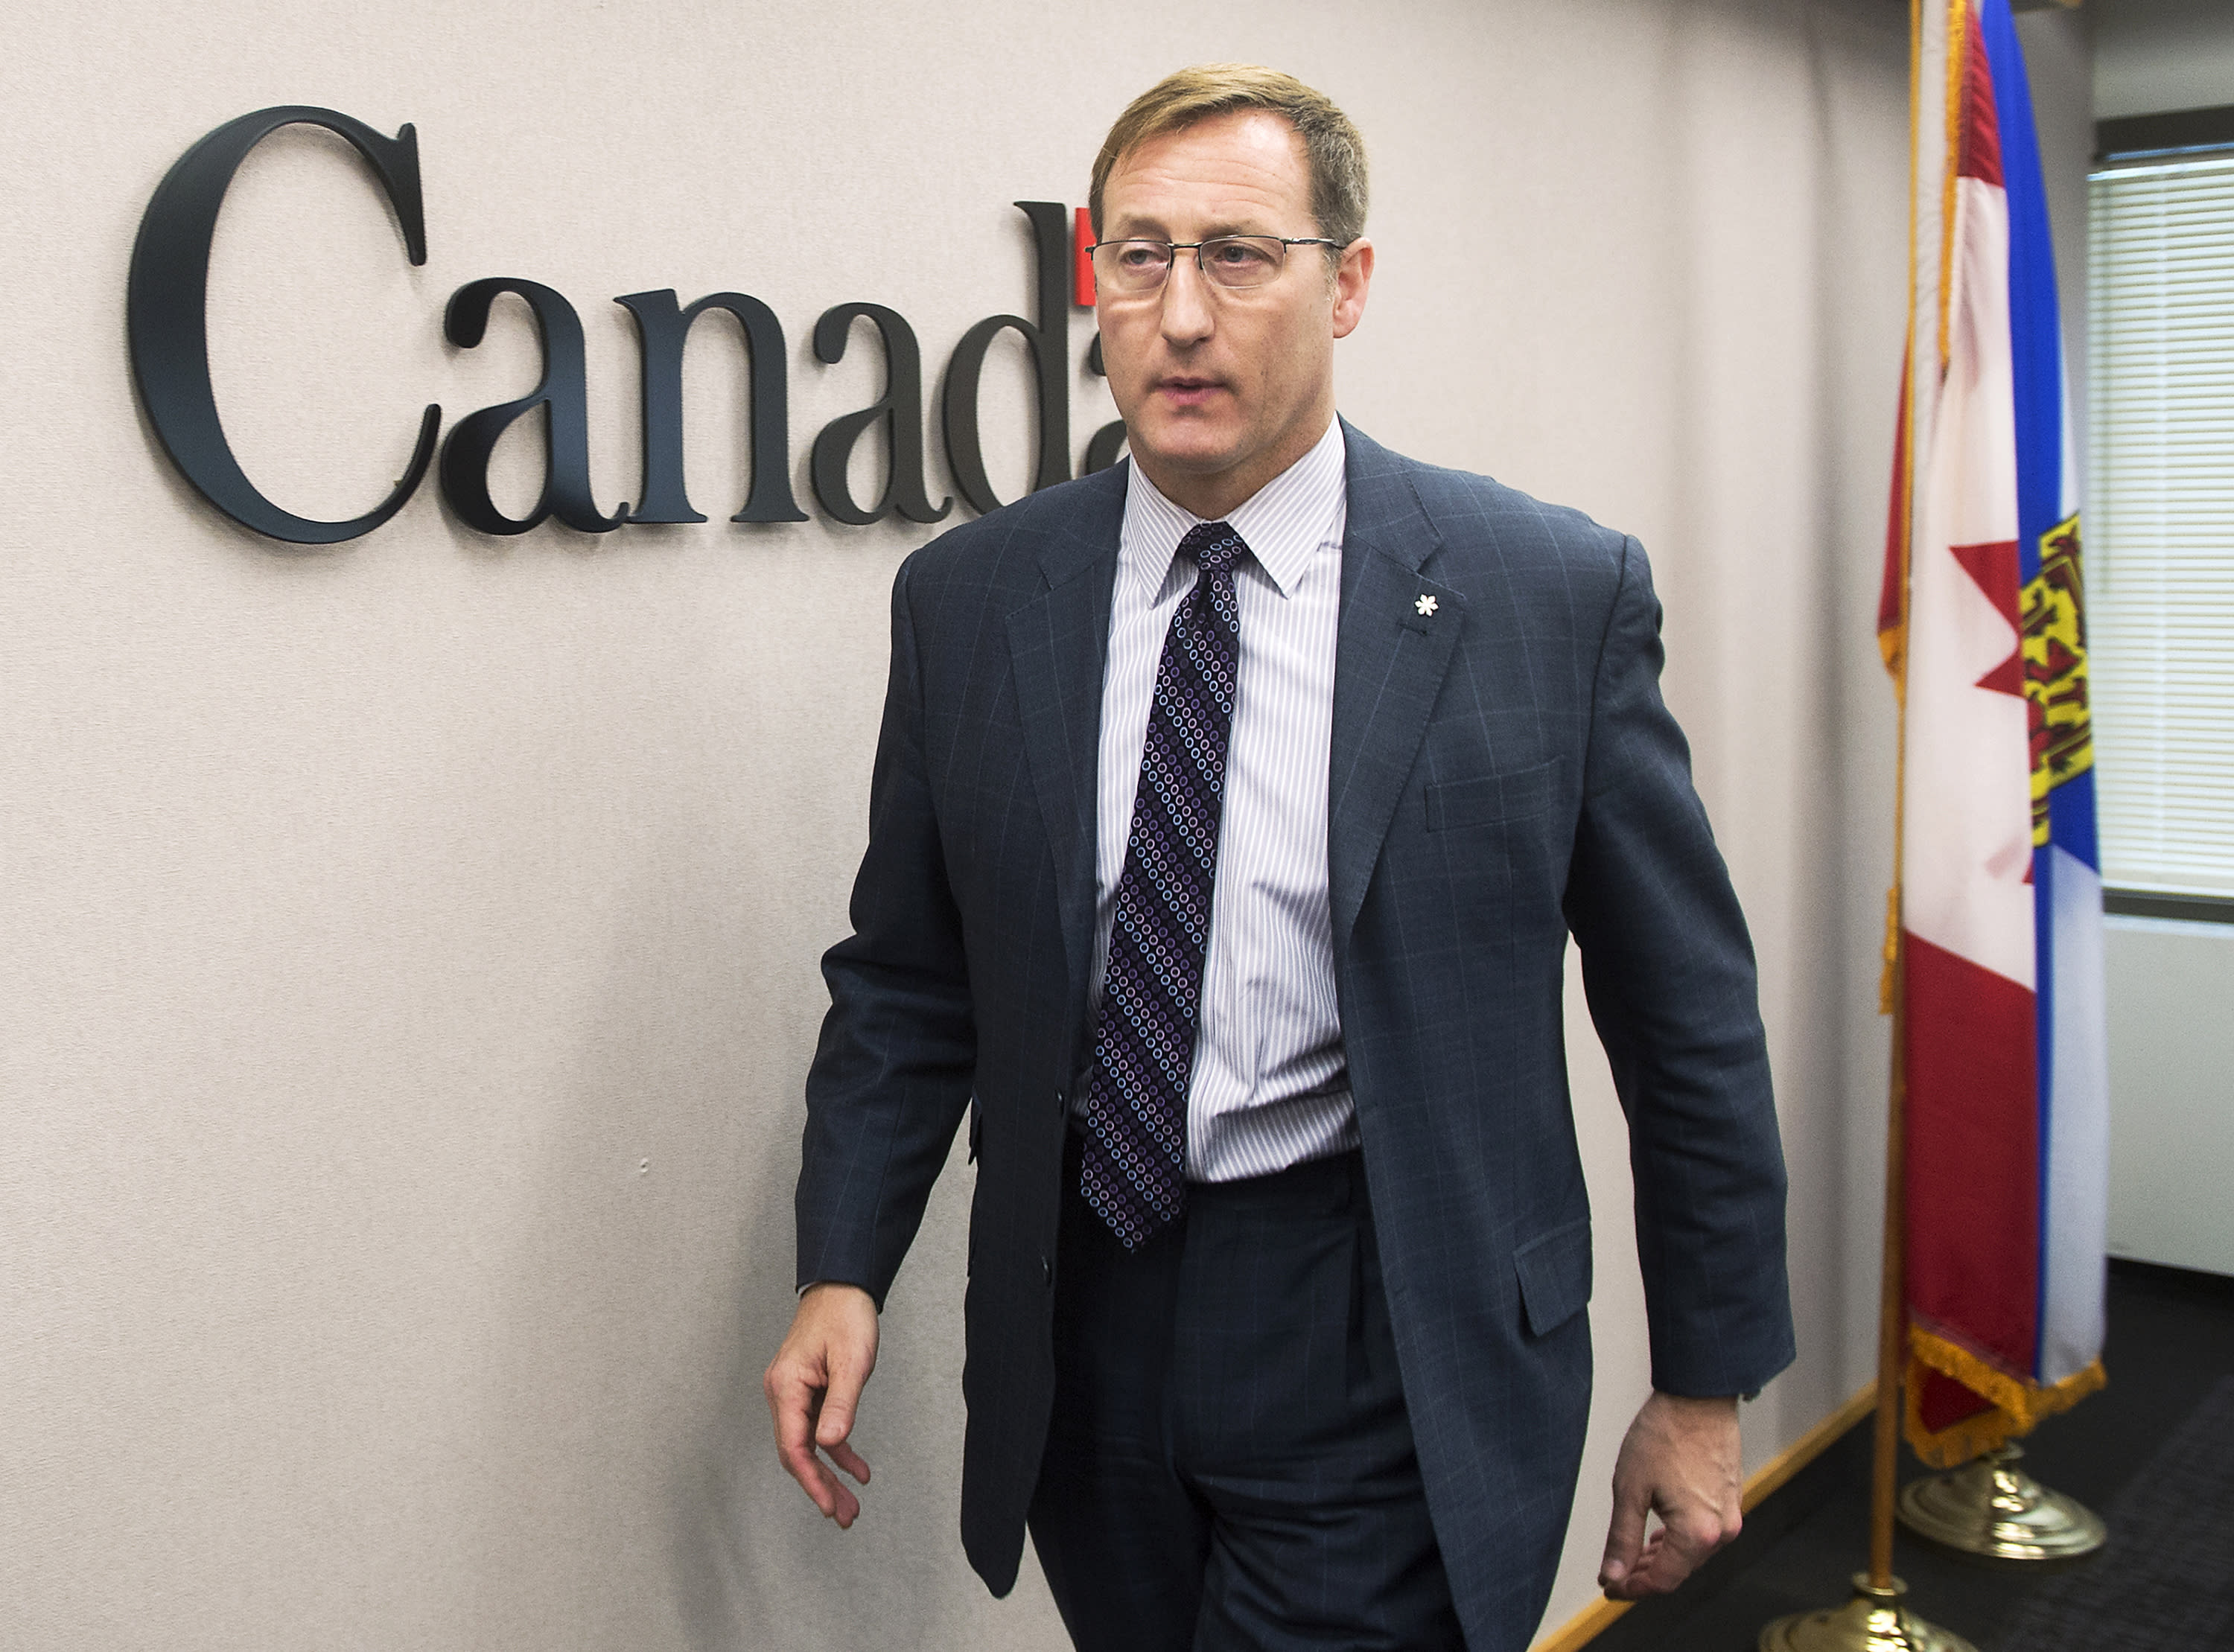 FILE - In this Feb. 14, 2015, file photo, Justice Minister Peter MacKay heads from a news conference in Halifax, Canada. Canada's opposition Conservative Party is holding an entirely mail-in ballot election for a new leader to carry it into the next general election. Results are to be announced on Sunday, Aug. 24, 2020. The frontrunners appeared to be former Cabinet minister Peter MacKay and veteran MP Erin O'Toole. (Andrew Vaughan/The Canadian Press via AP, File)